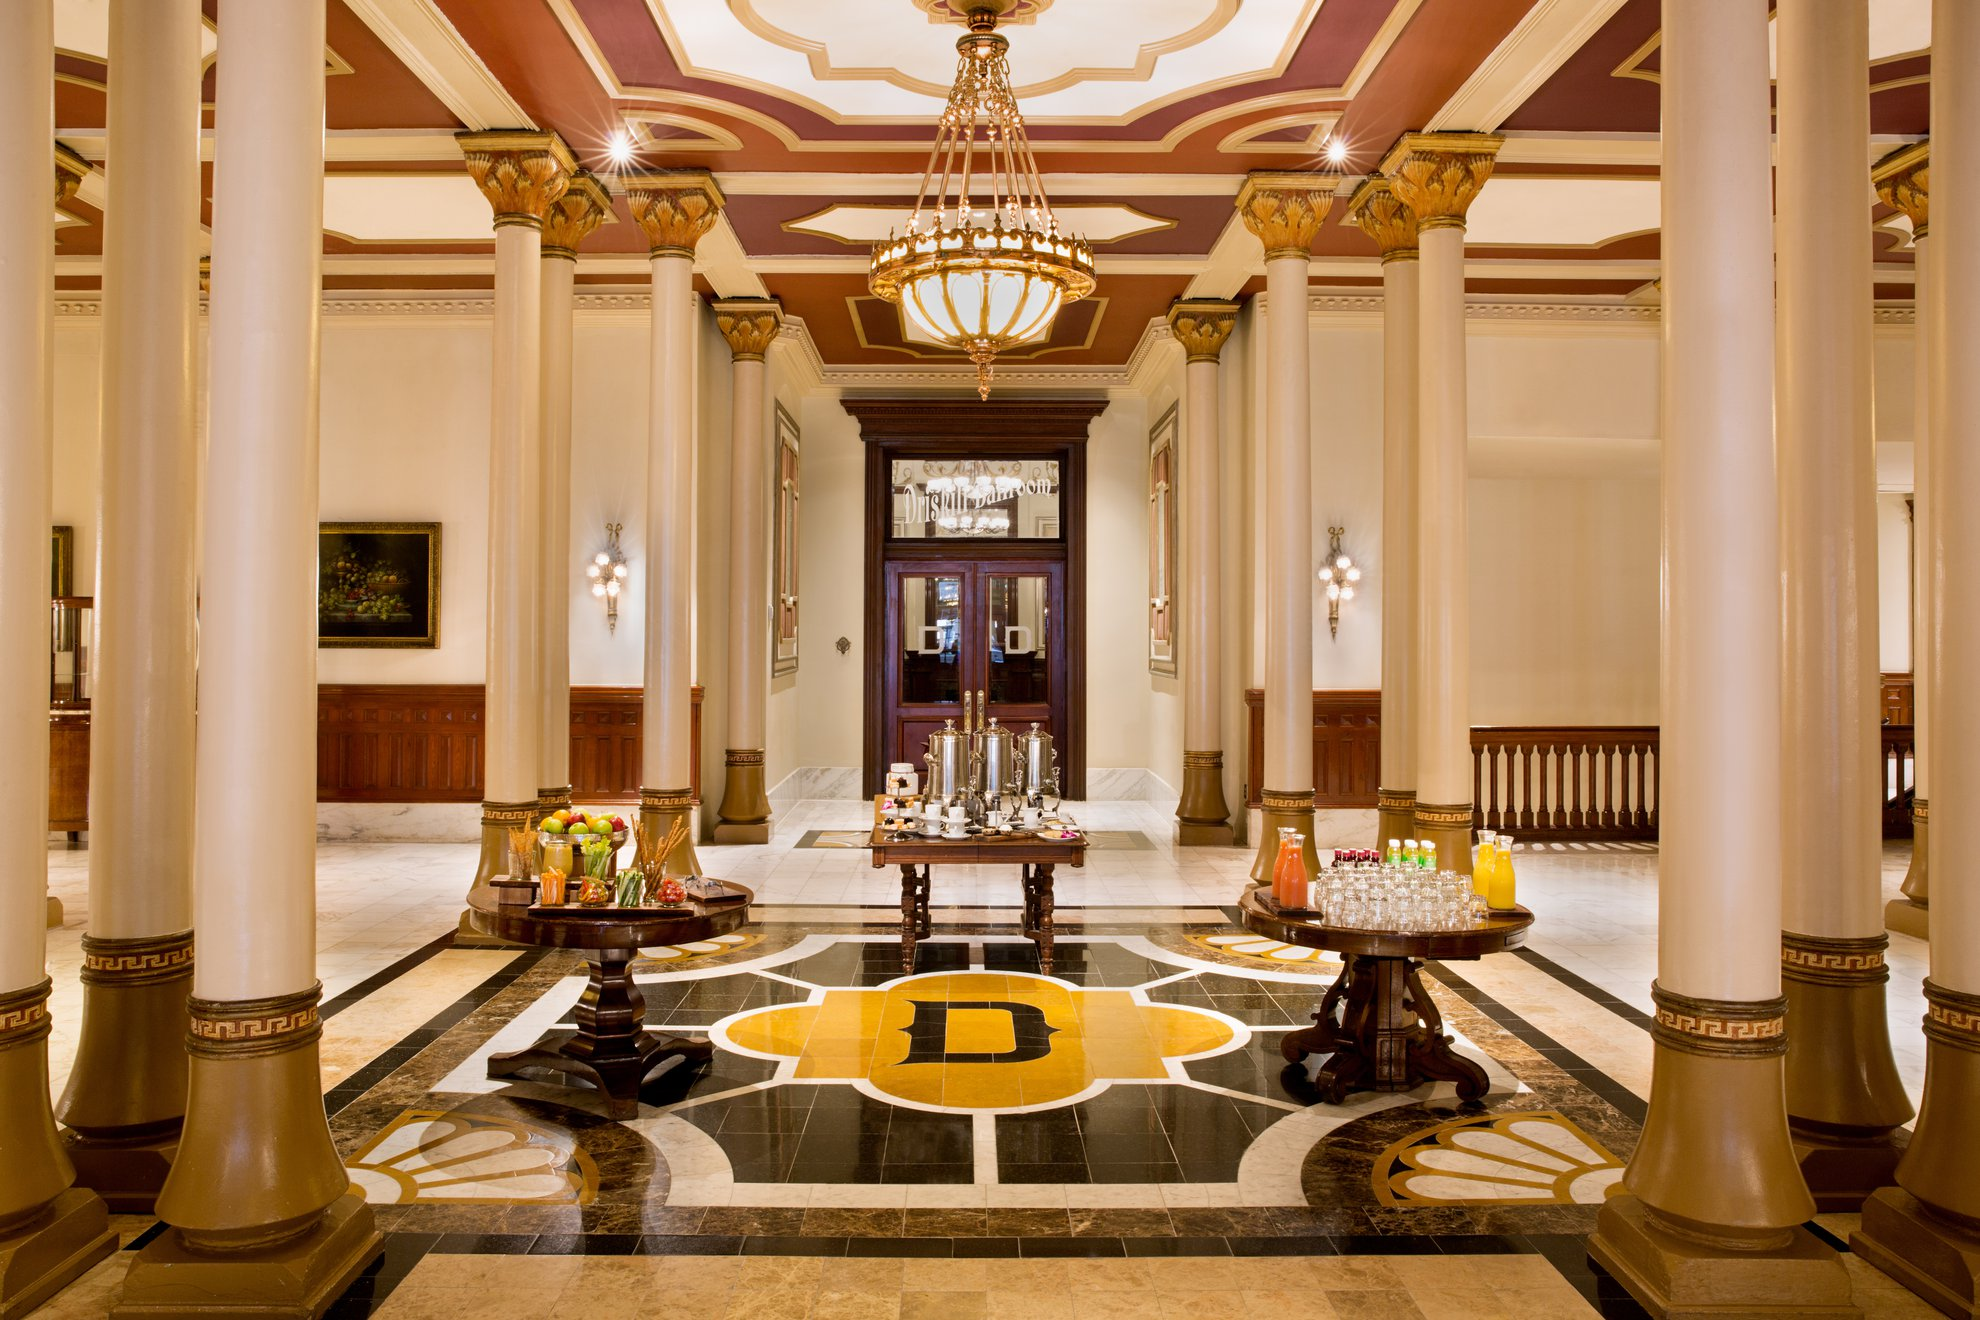 The Driskill Mezzanine Event Space